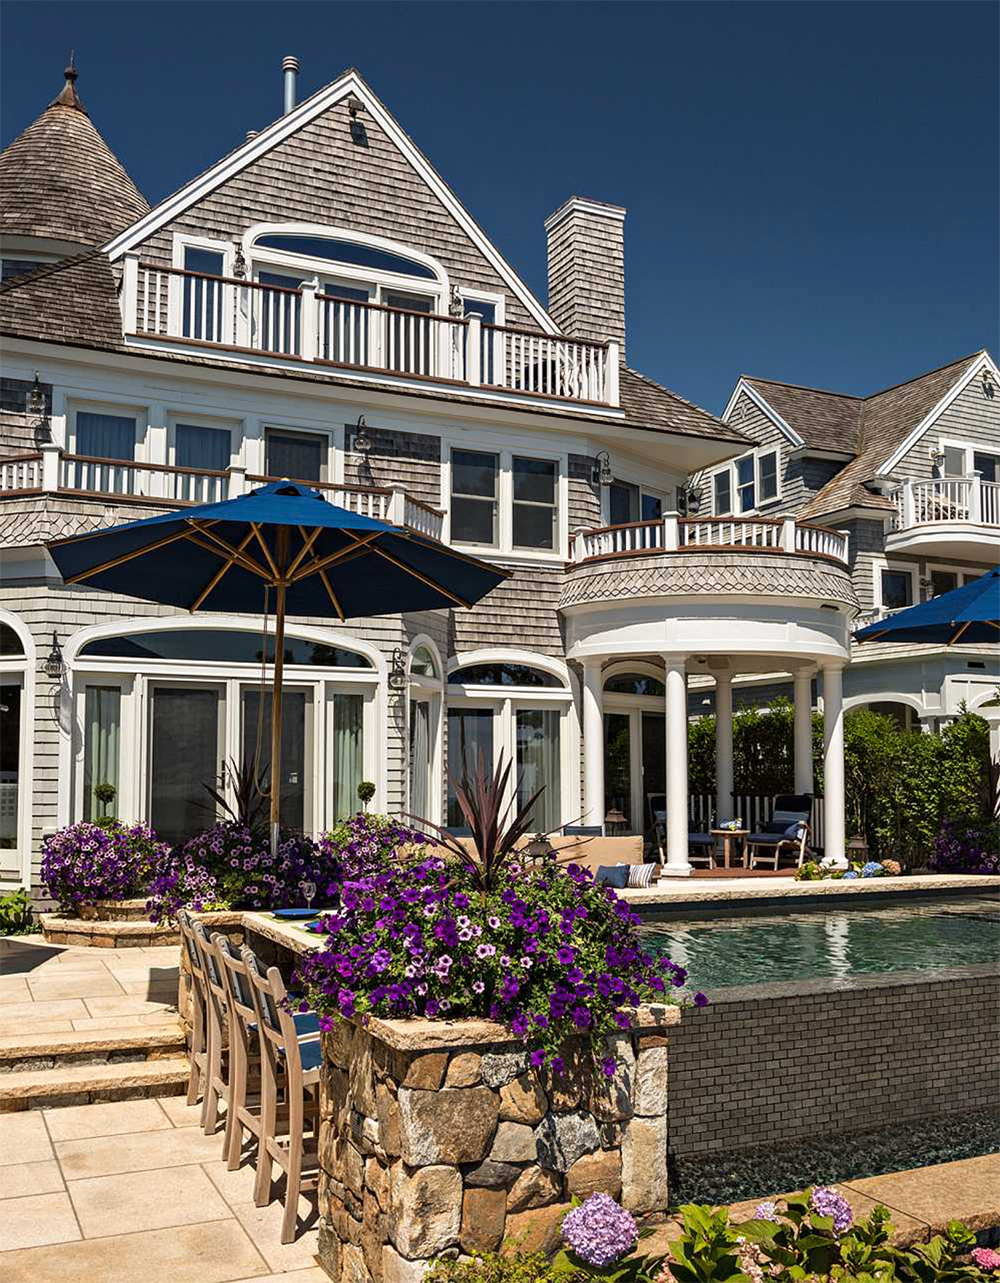 Beachside landscape architecture Nantucket Sound, New England beach homes